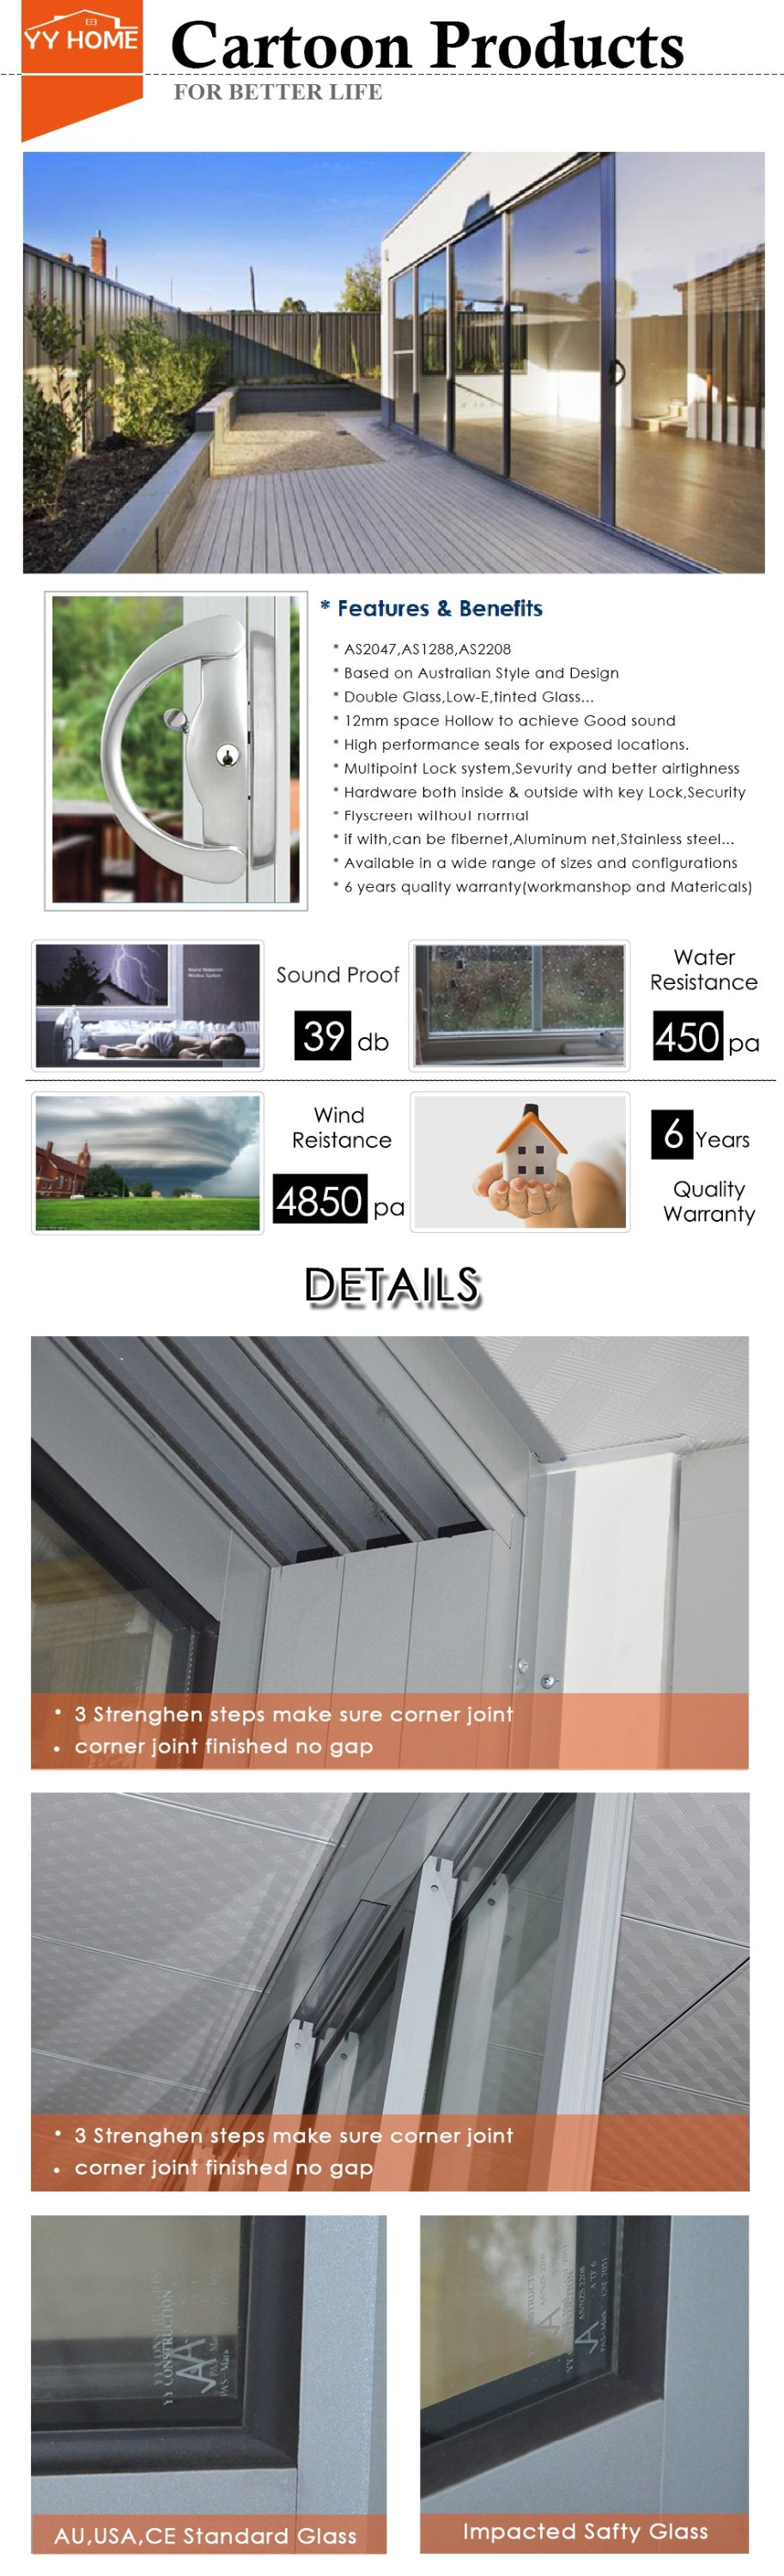 YY Home Australia standard double glazed soundproof insulated aluminium collapsible doors with blinds inside